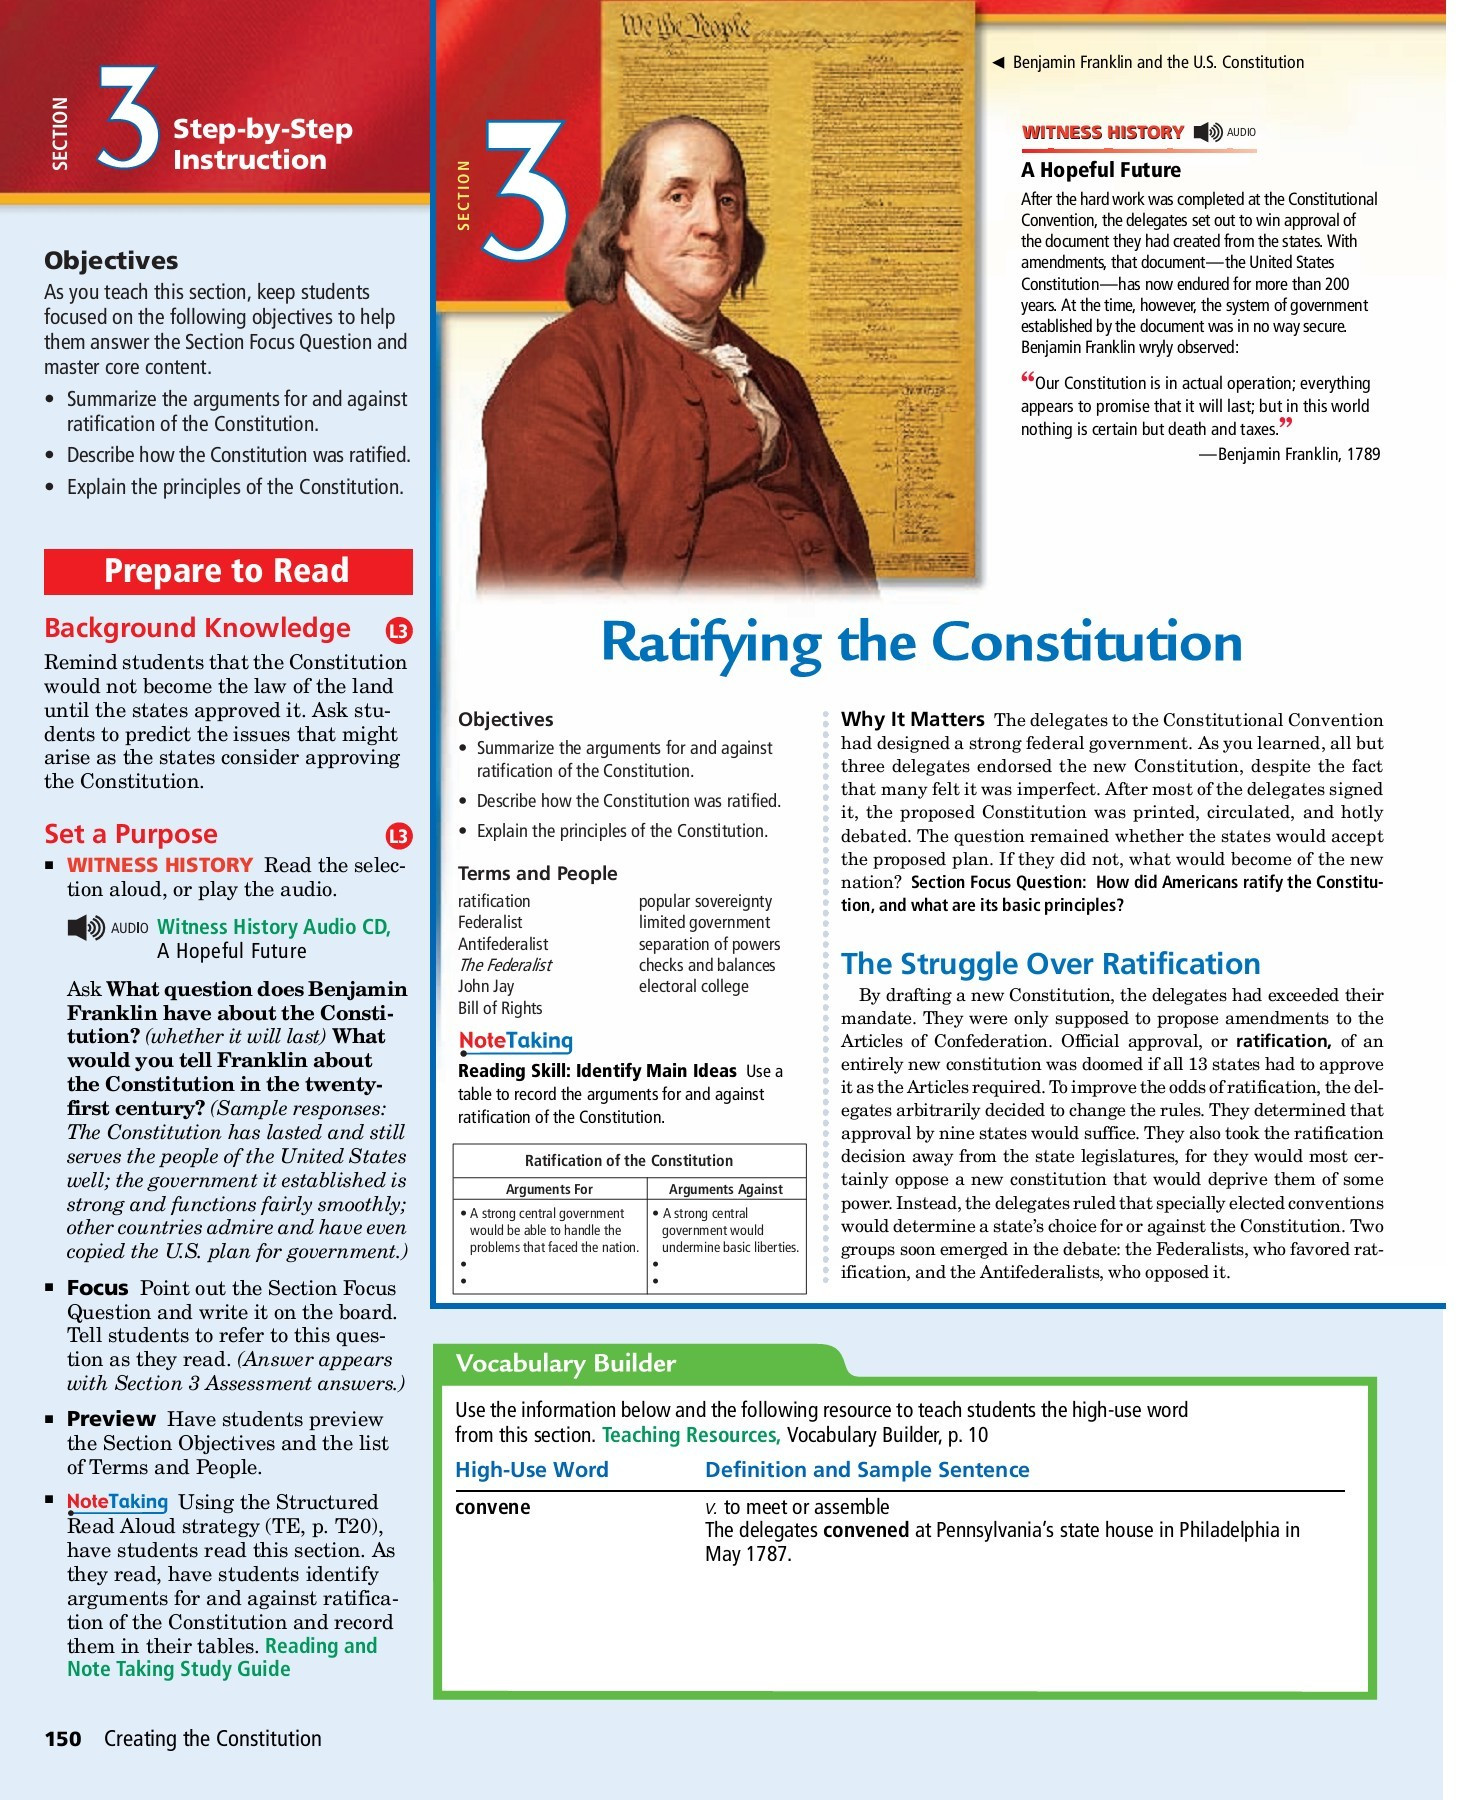 Ratifying the Constitution Worksheet Answers Prepare to Read L3 Ratifying the Constitution Pages 1 4